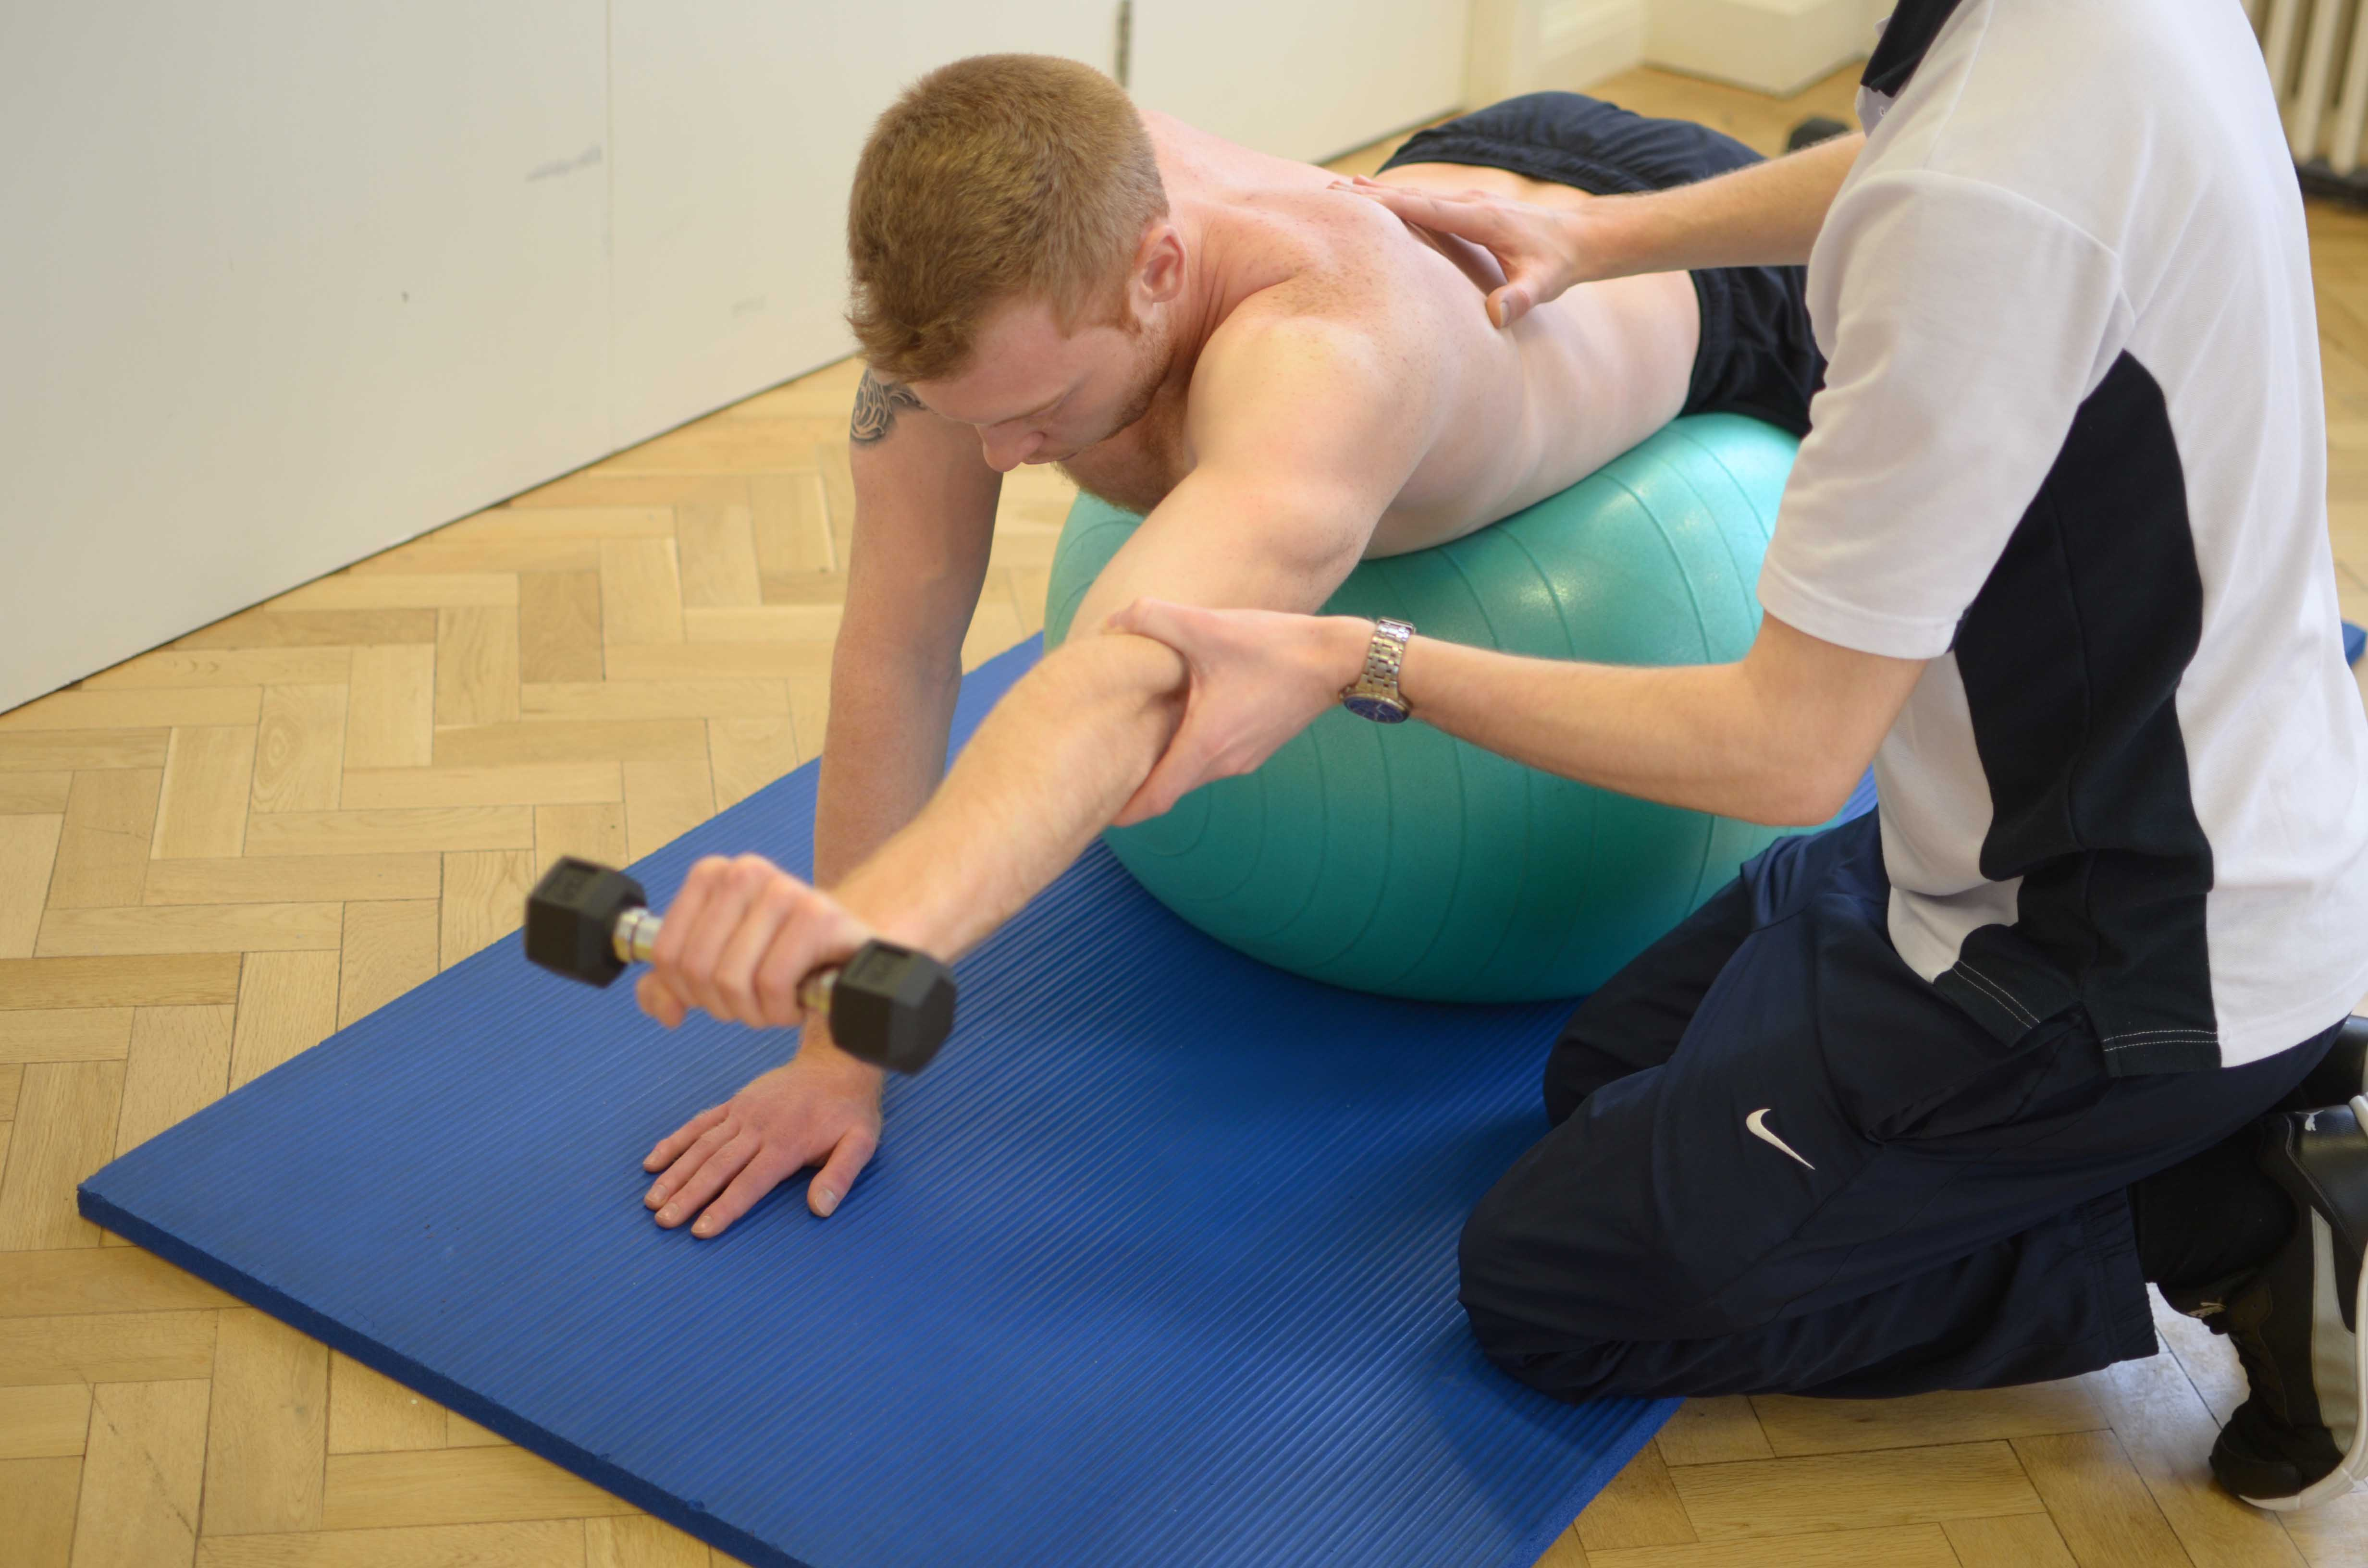 Progressive strengthening exercises isolating the upper back muscles